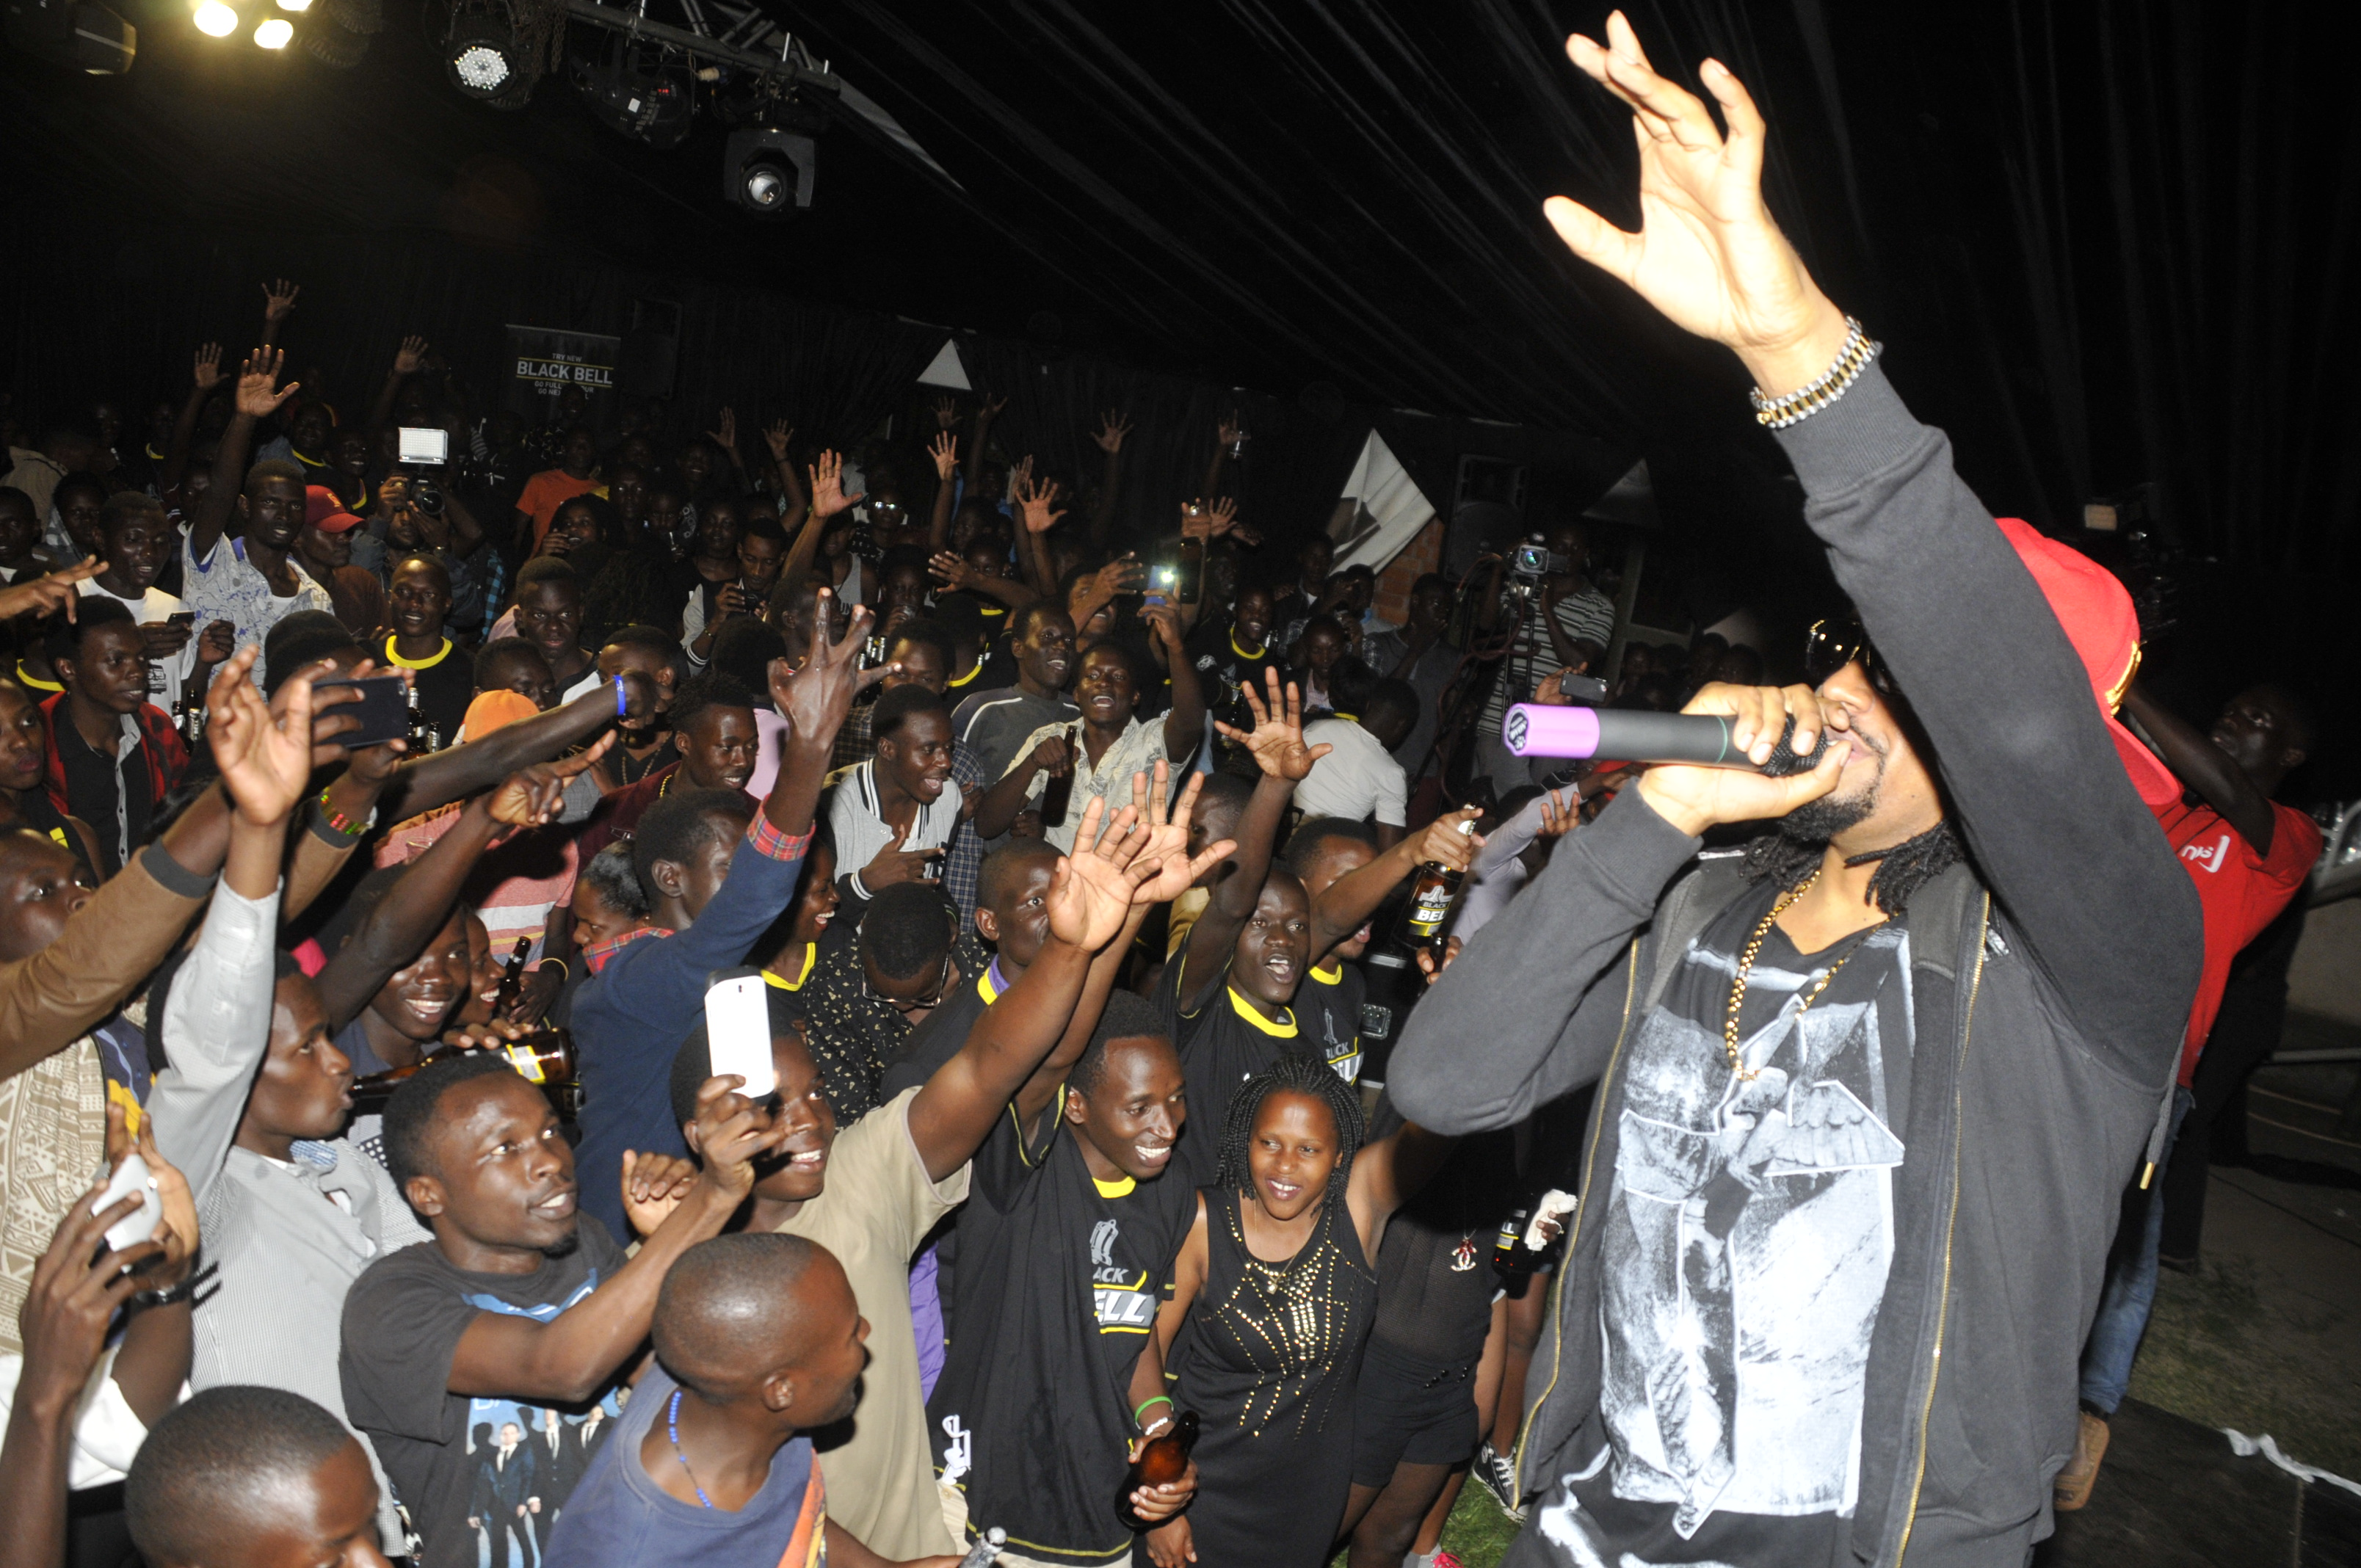 The crowd grooving to Navio's music